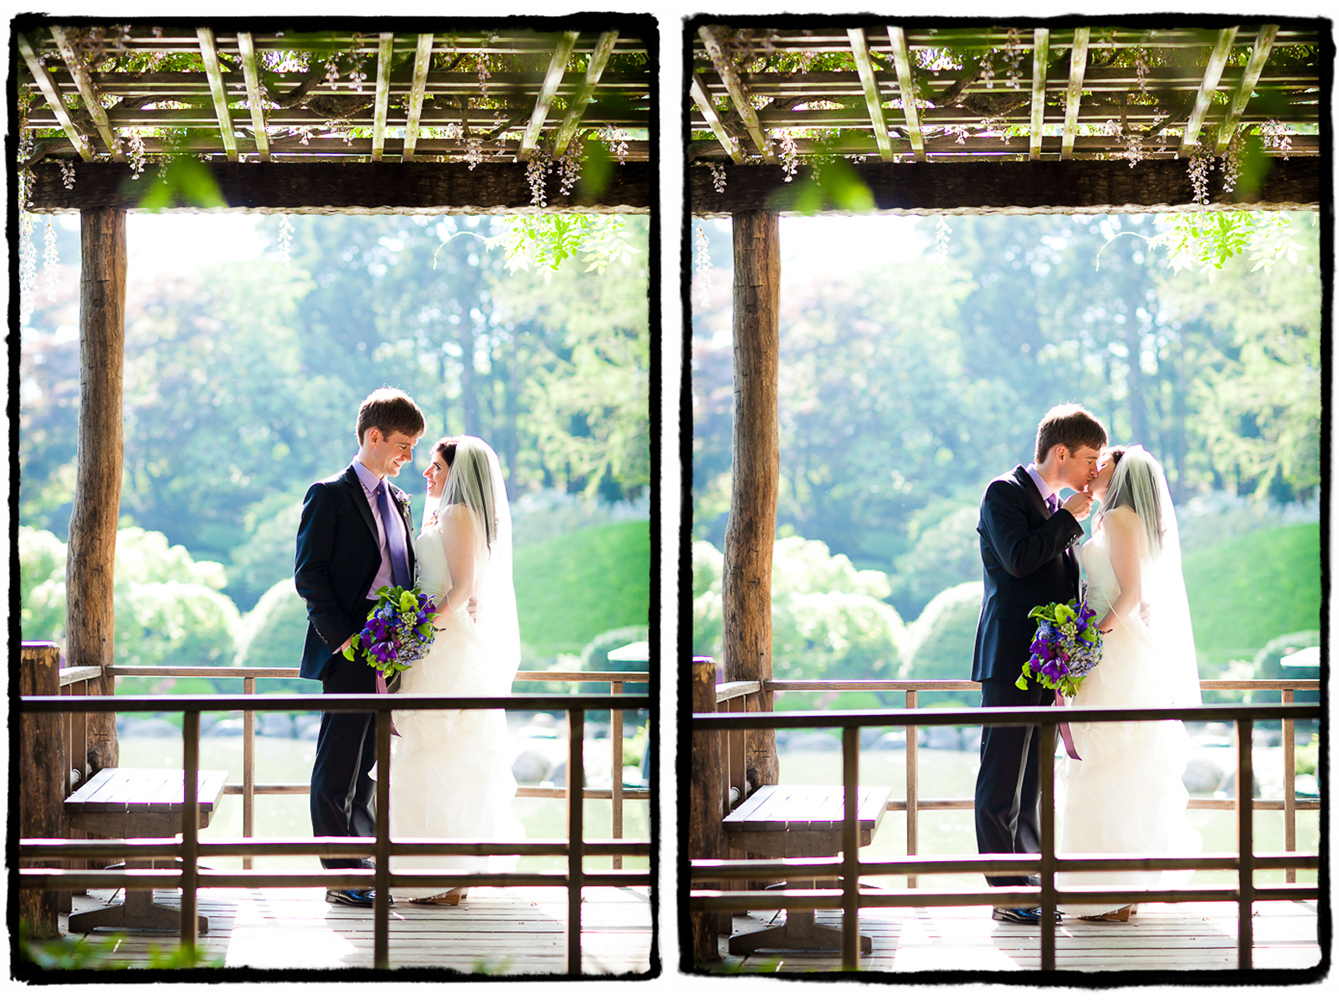 Deena & Joe share a kiss under a pergola at Brooklyn Botanic Garden before heading to the Palm House to celebrate at their reception.